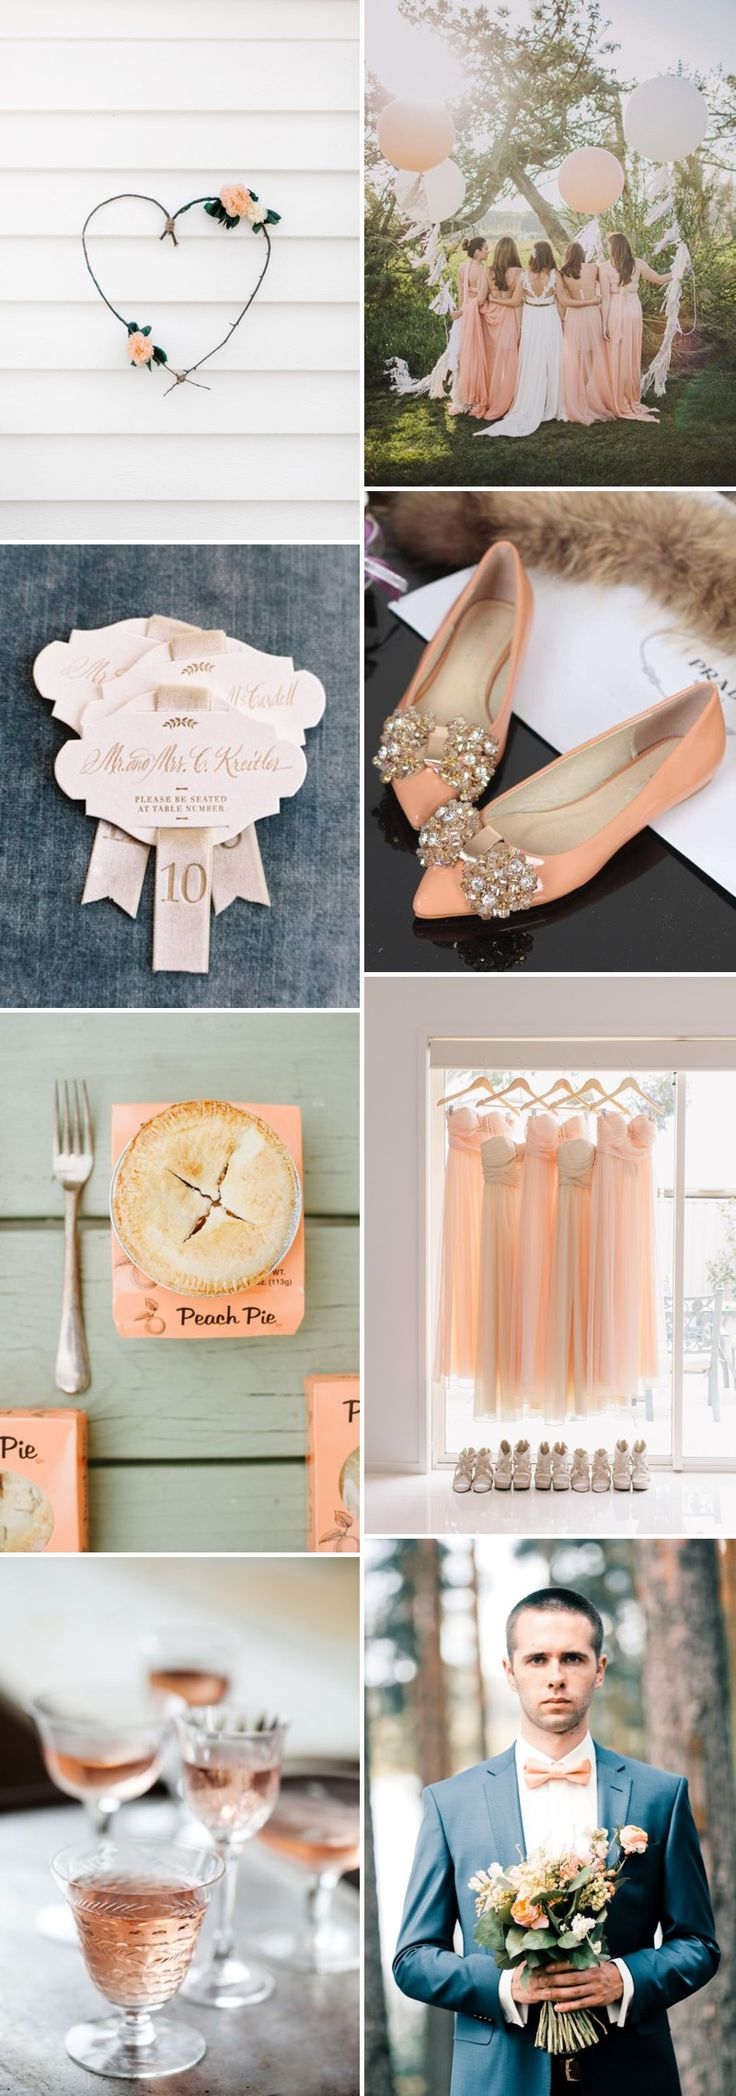 How To Create A Peach Colour Themed Wedding Using Flowers Bridesmaids Cakes And Decor. 0002 Colour Story: Peaches And Cream.